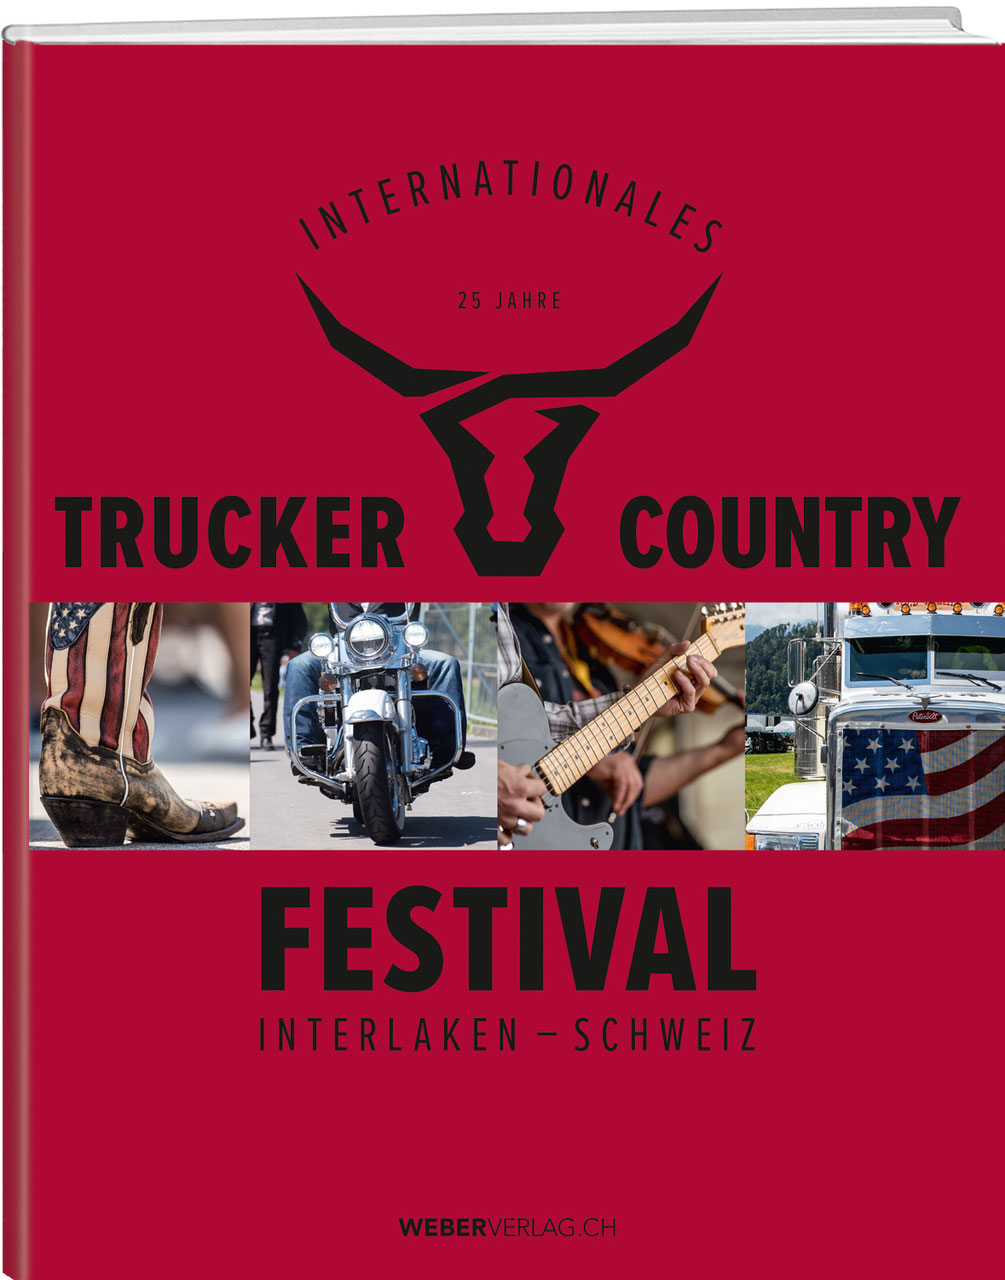 25 jahre internationales trucker country festival. Black Bedroom Furniture Sets. Home Design Ideas